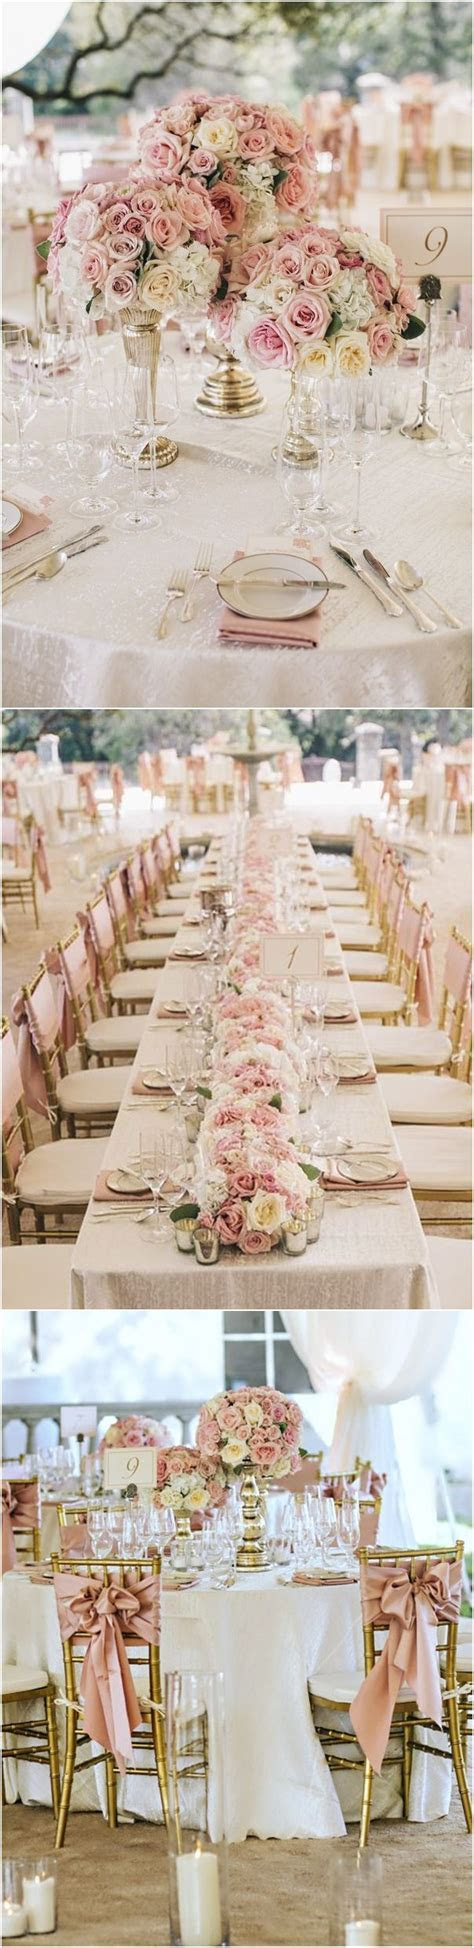 gold and dusty rose wedding decoration ideas   Make Me Happy